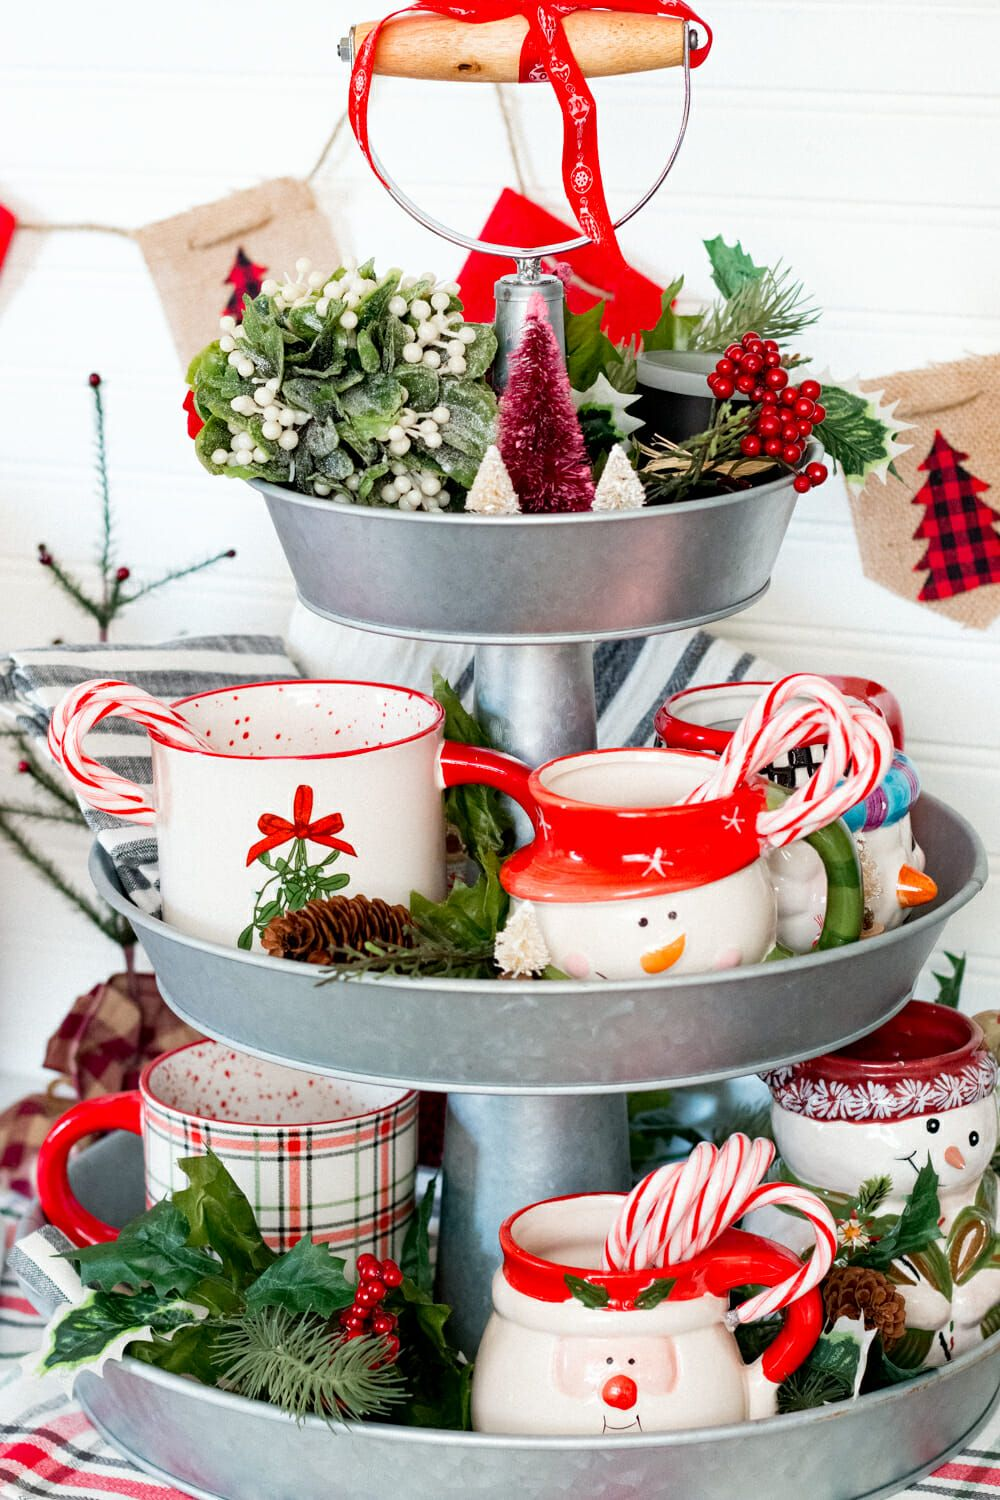 How to Make a Simple but Adorable Farmhouse Christmas Tray